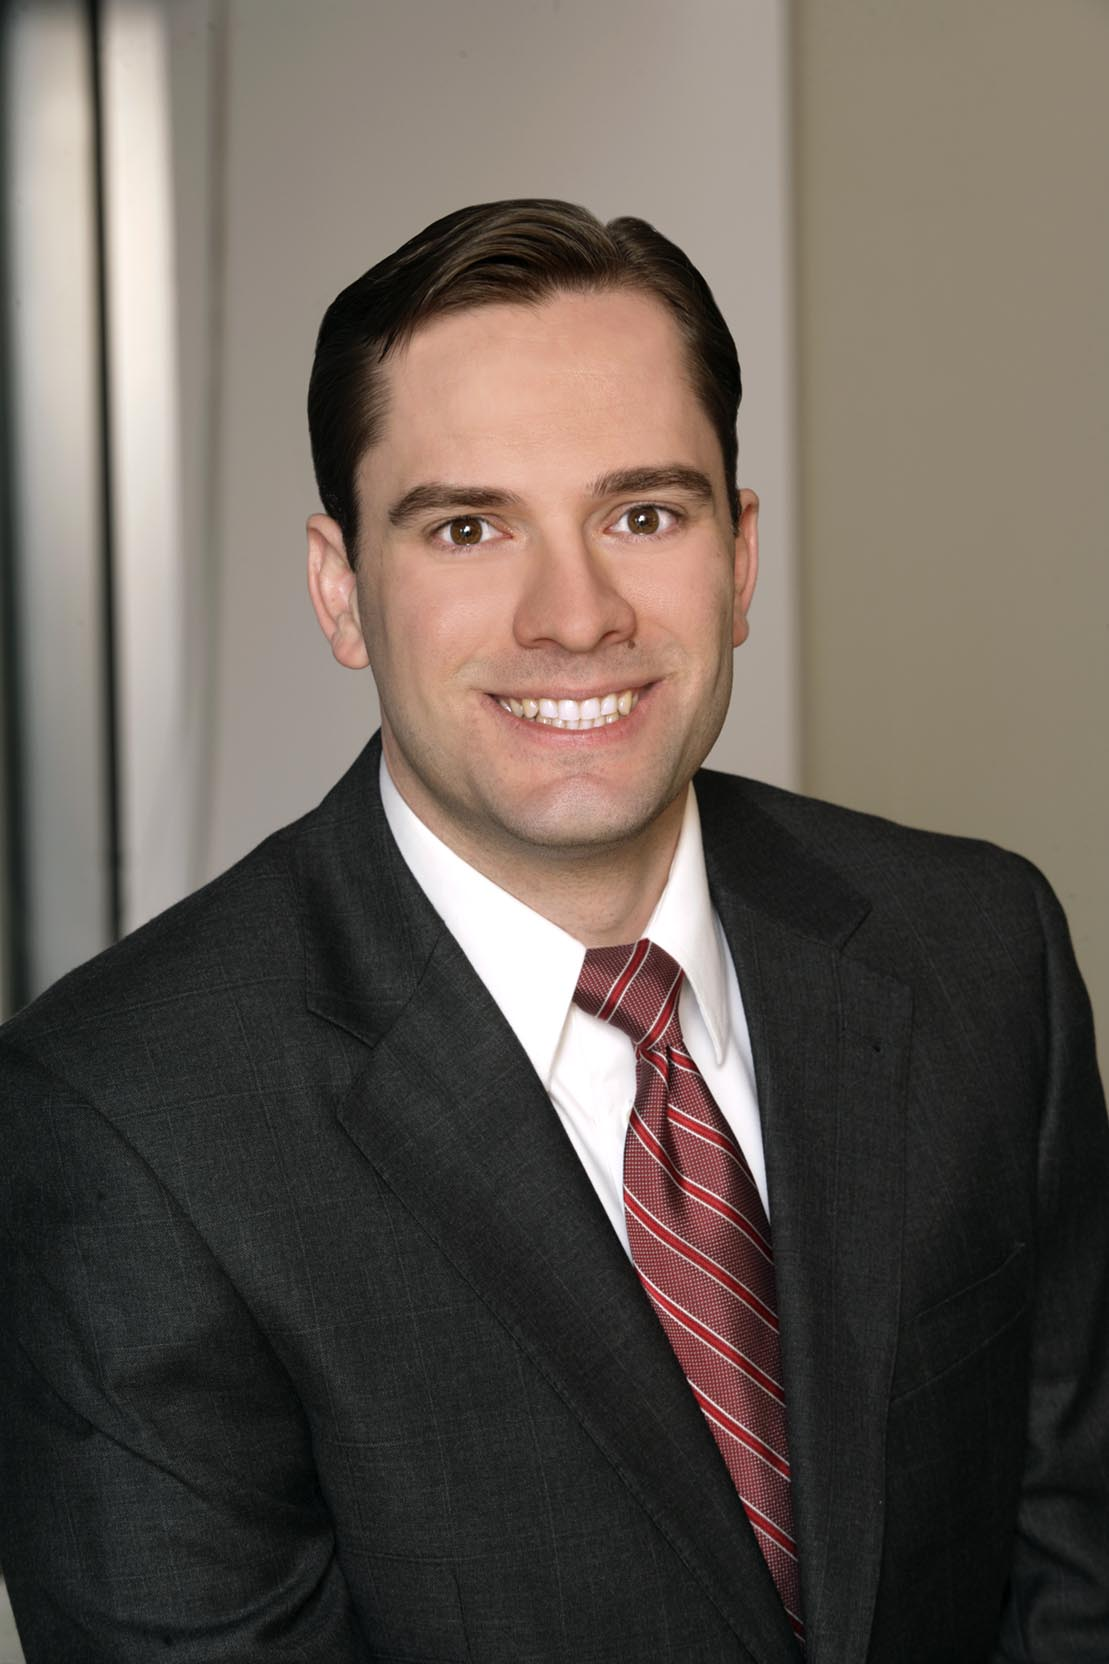 Christopher Hinderliter - Personal Injury Lawyer